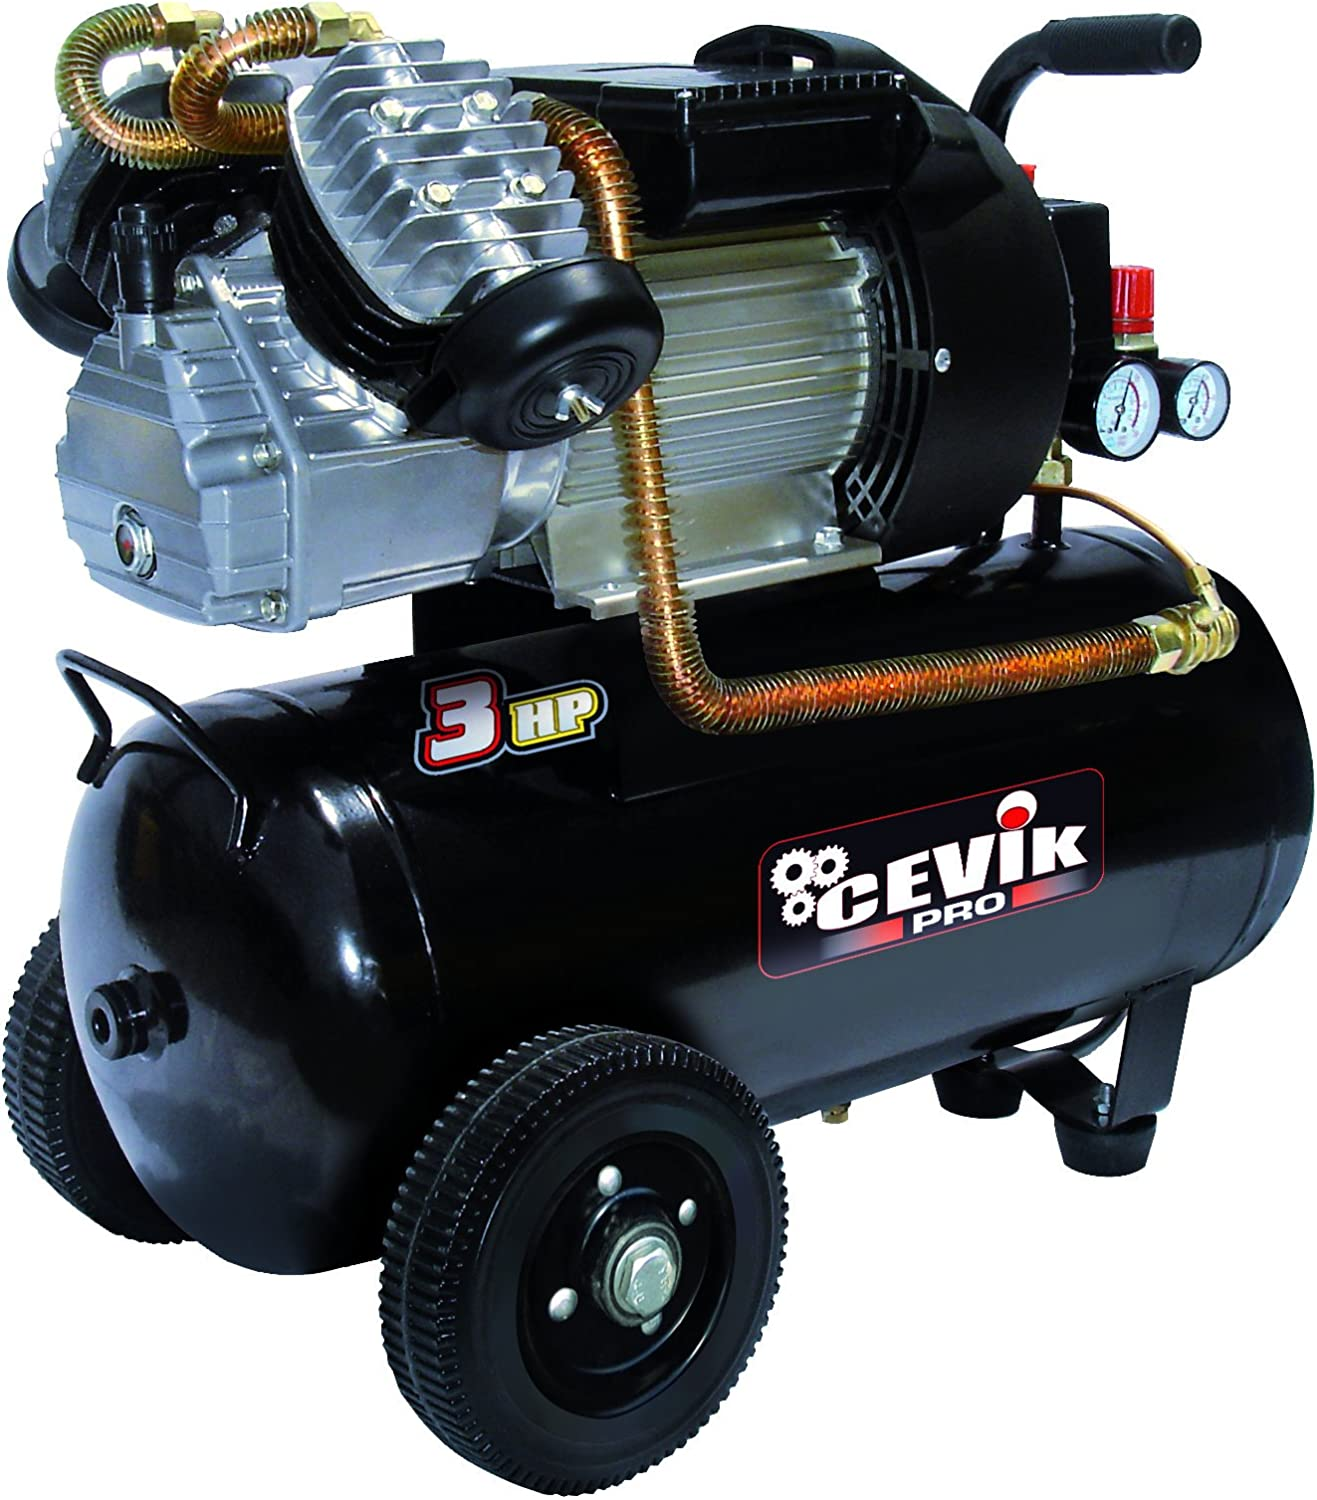 Cevik Pro 50Vx - Compresor 3HP 50L: Amazon.es: Bricolaje y ...